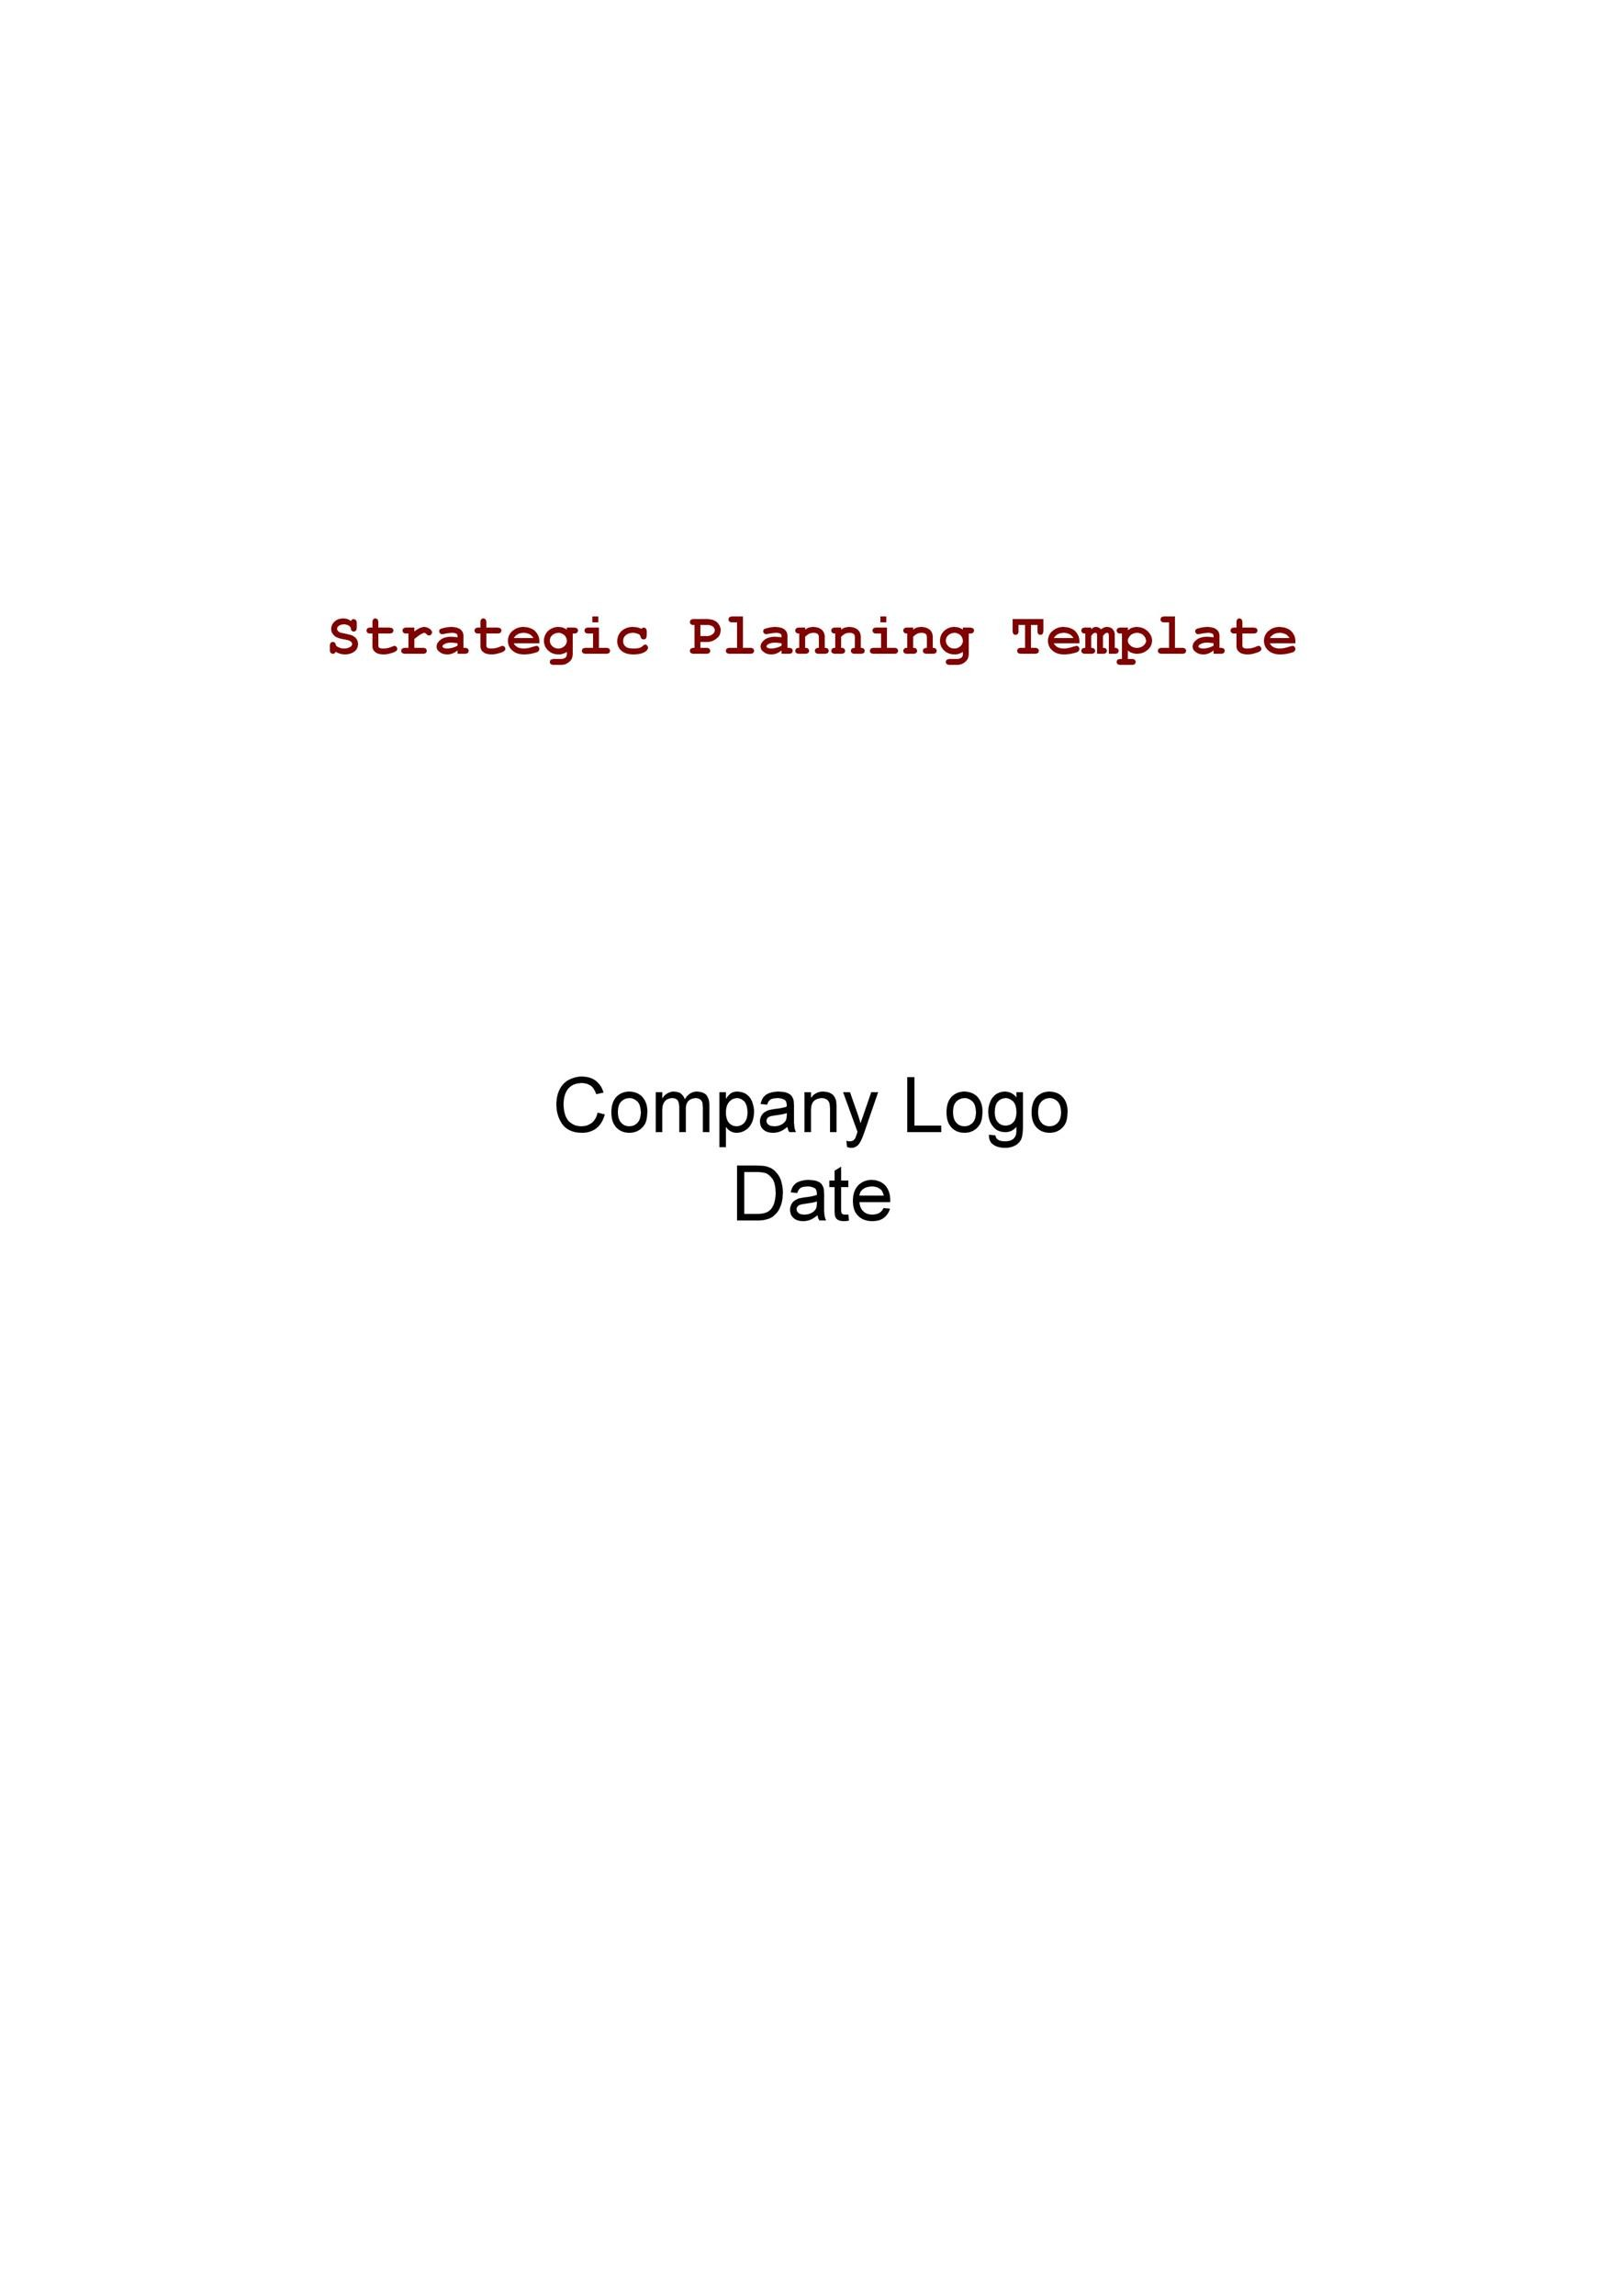 Free Strategic Plan Template 07